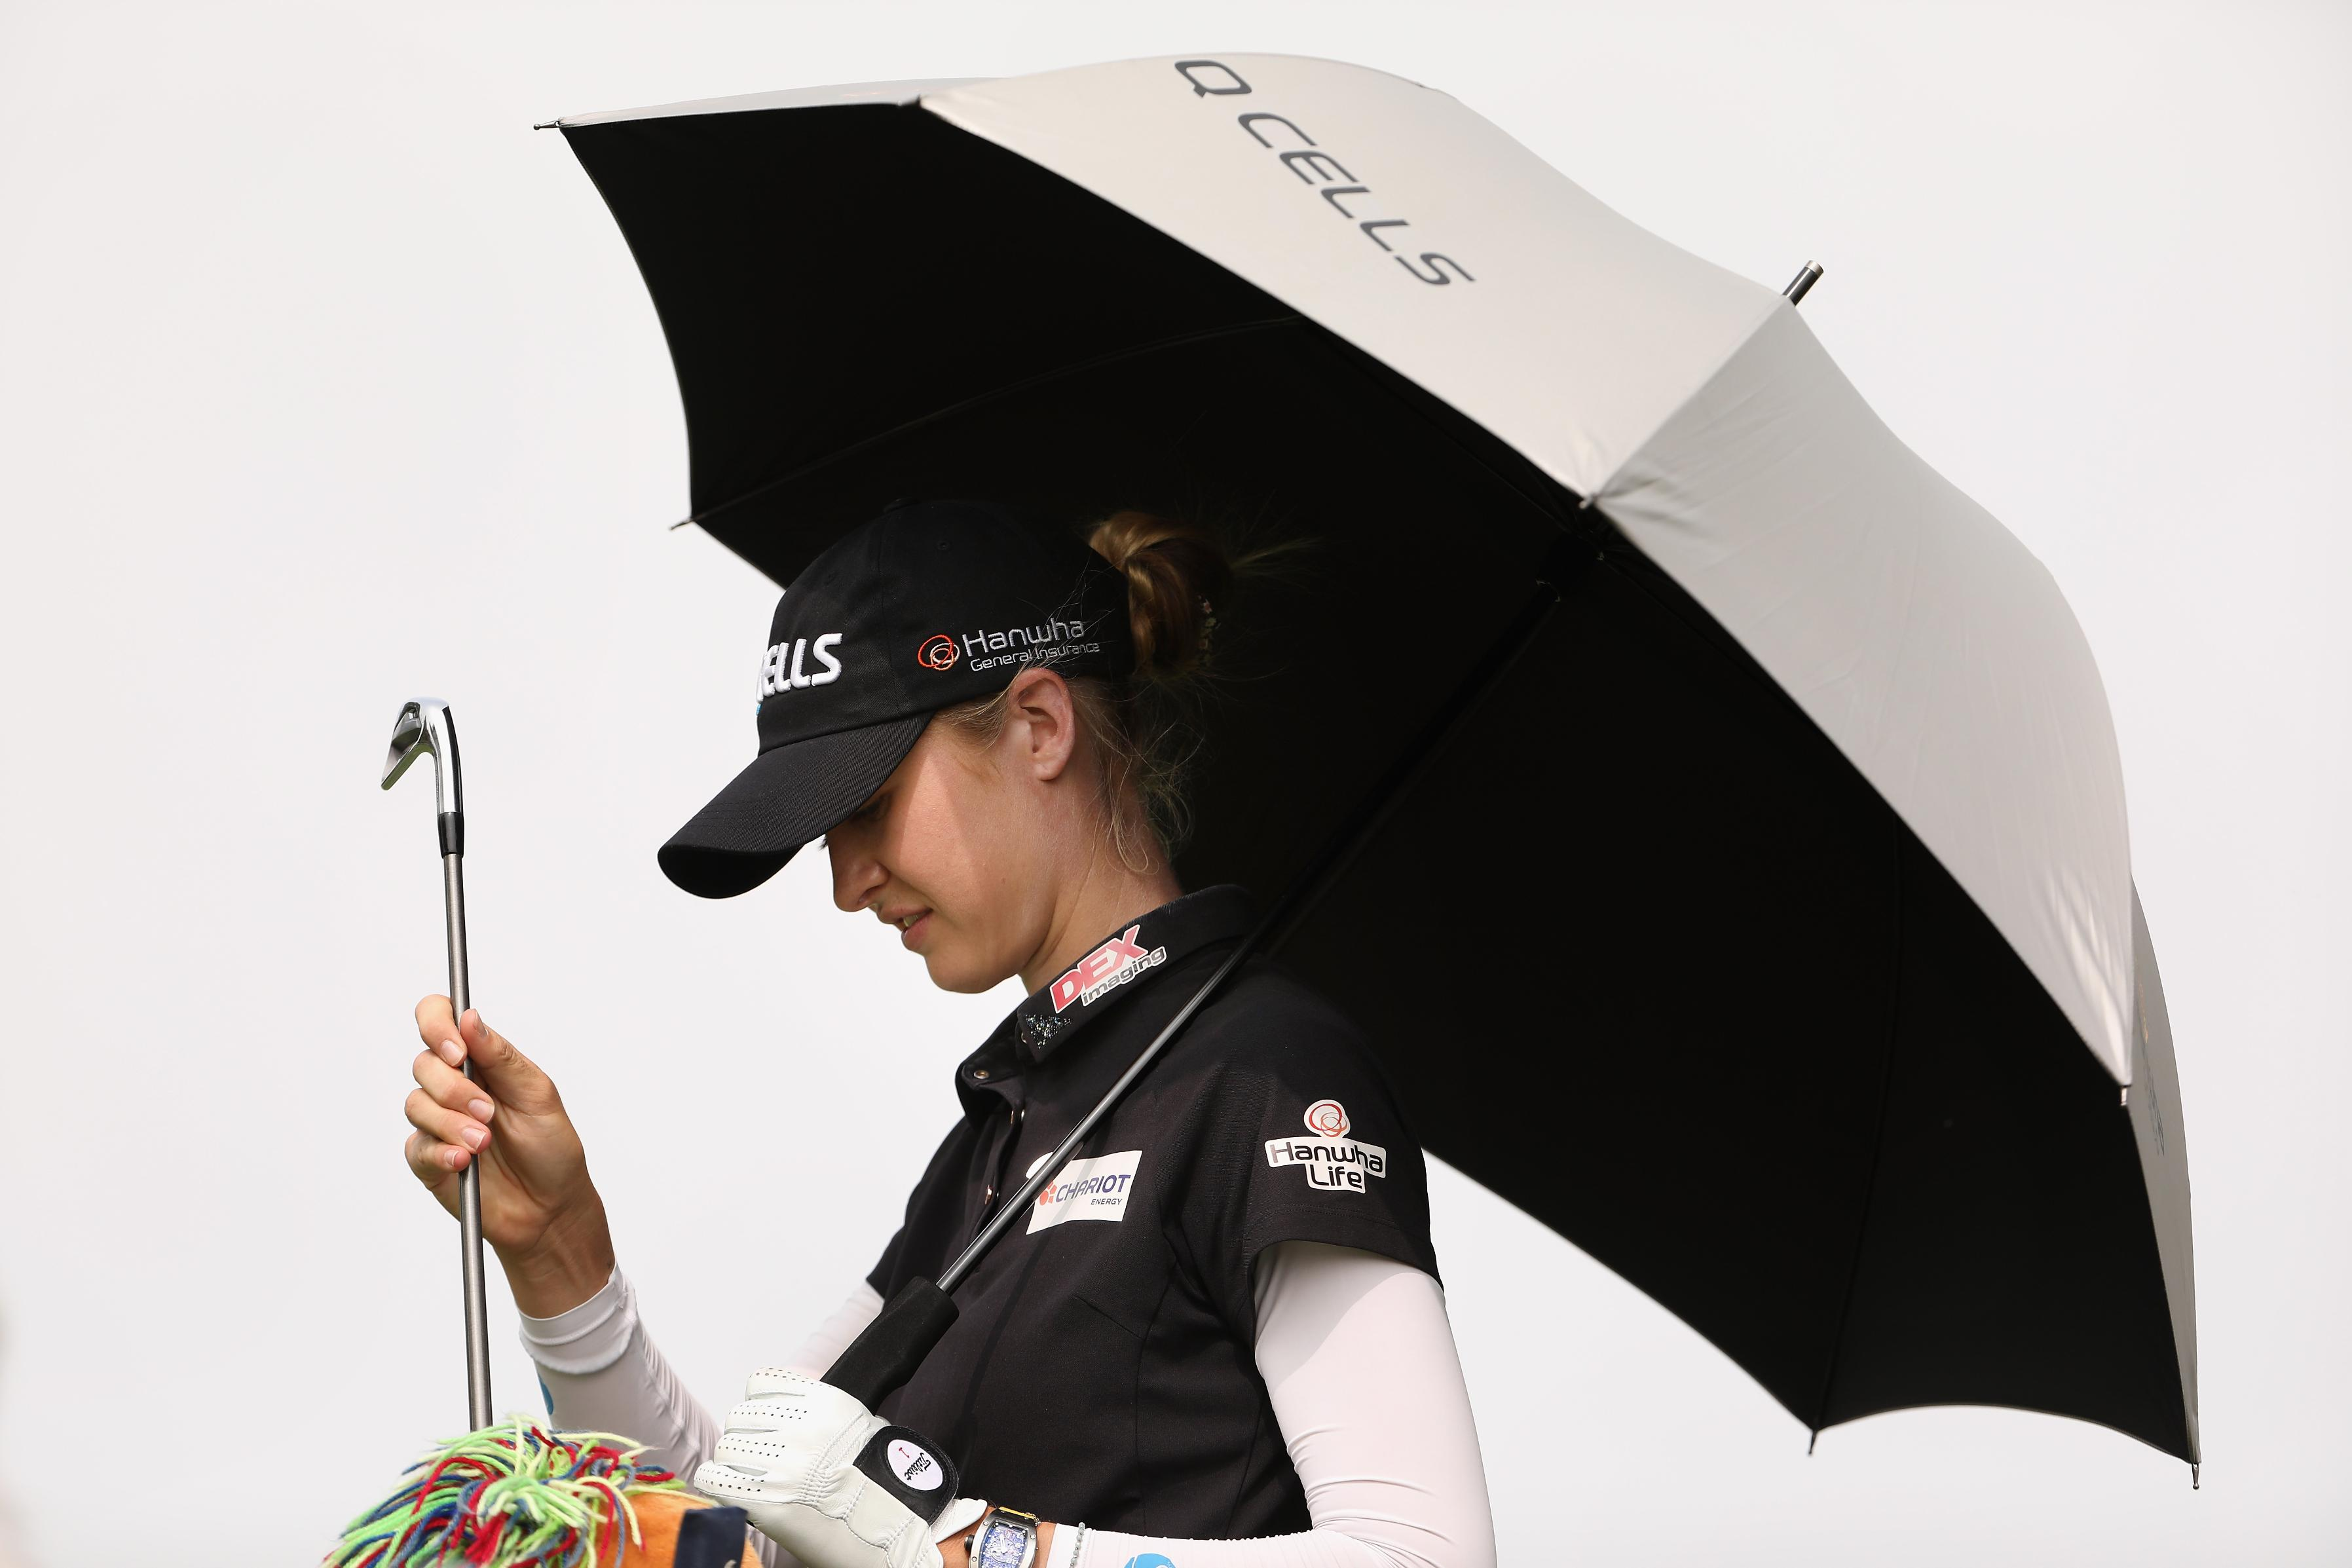 Canada's Henderson joins Korda in lead on 'stinking hot' day in California